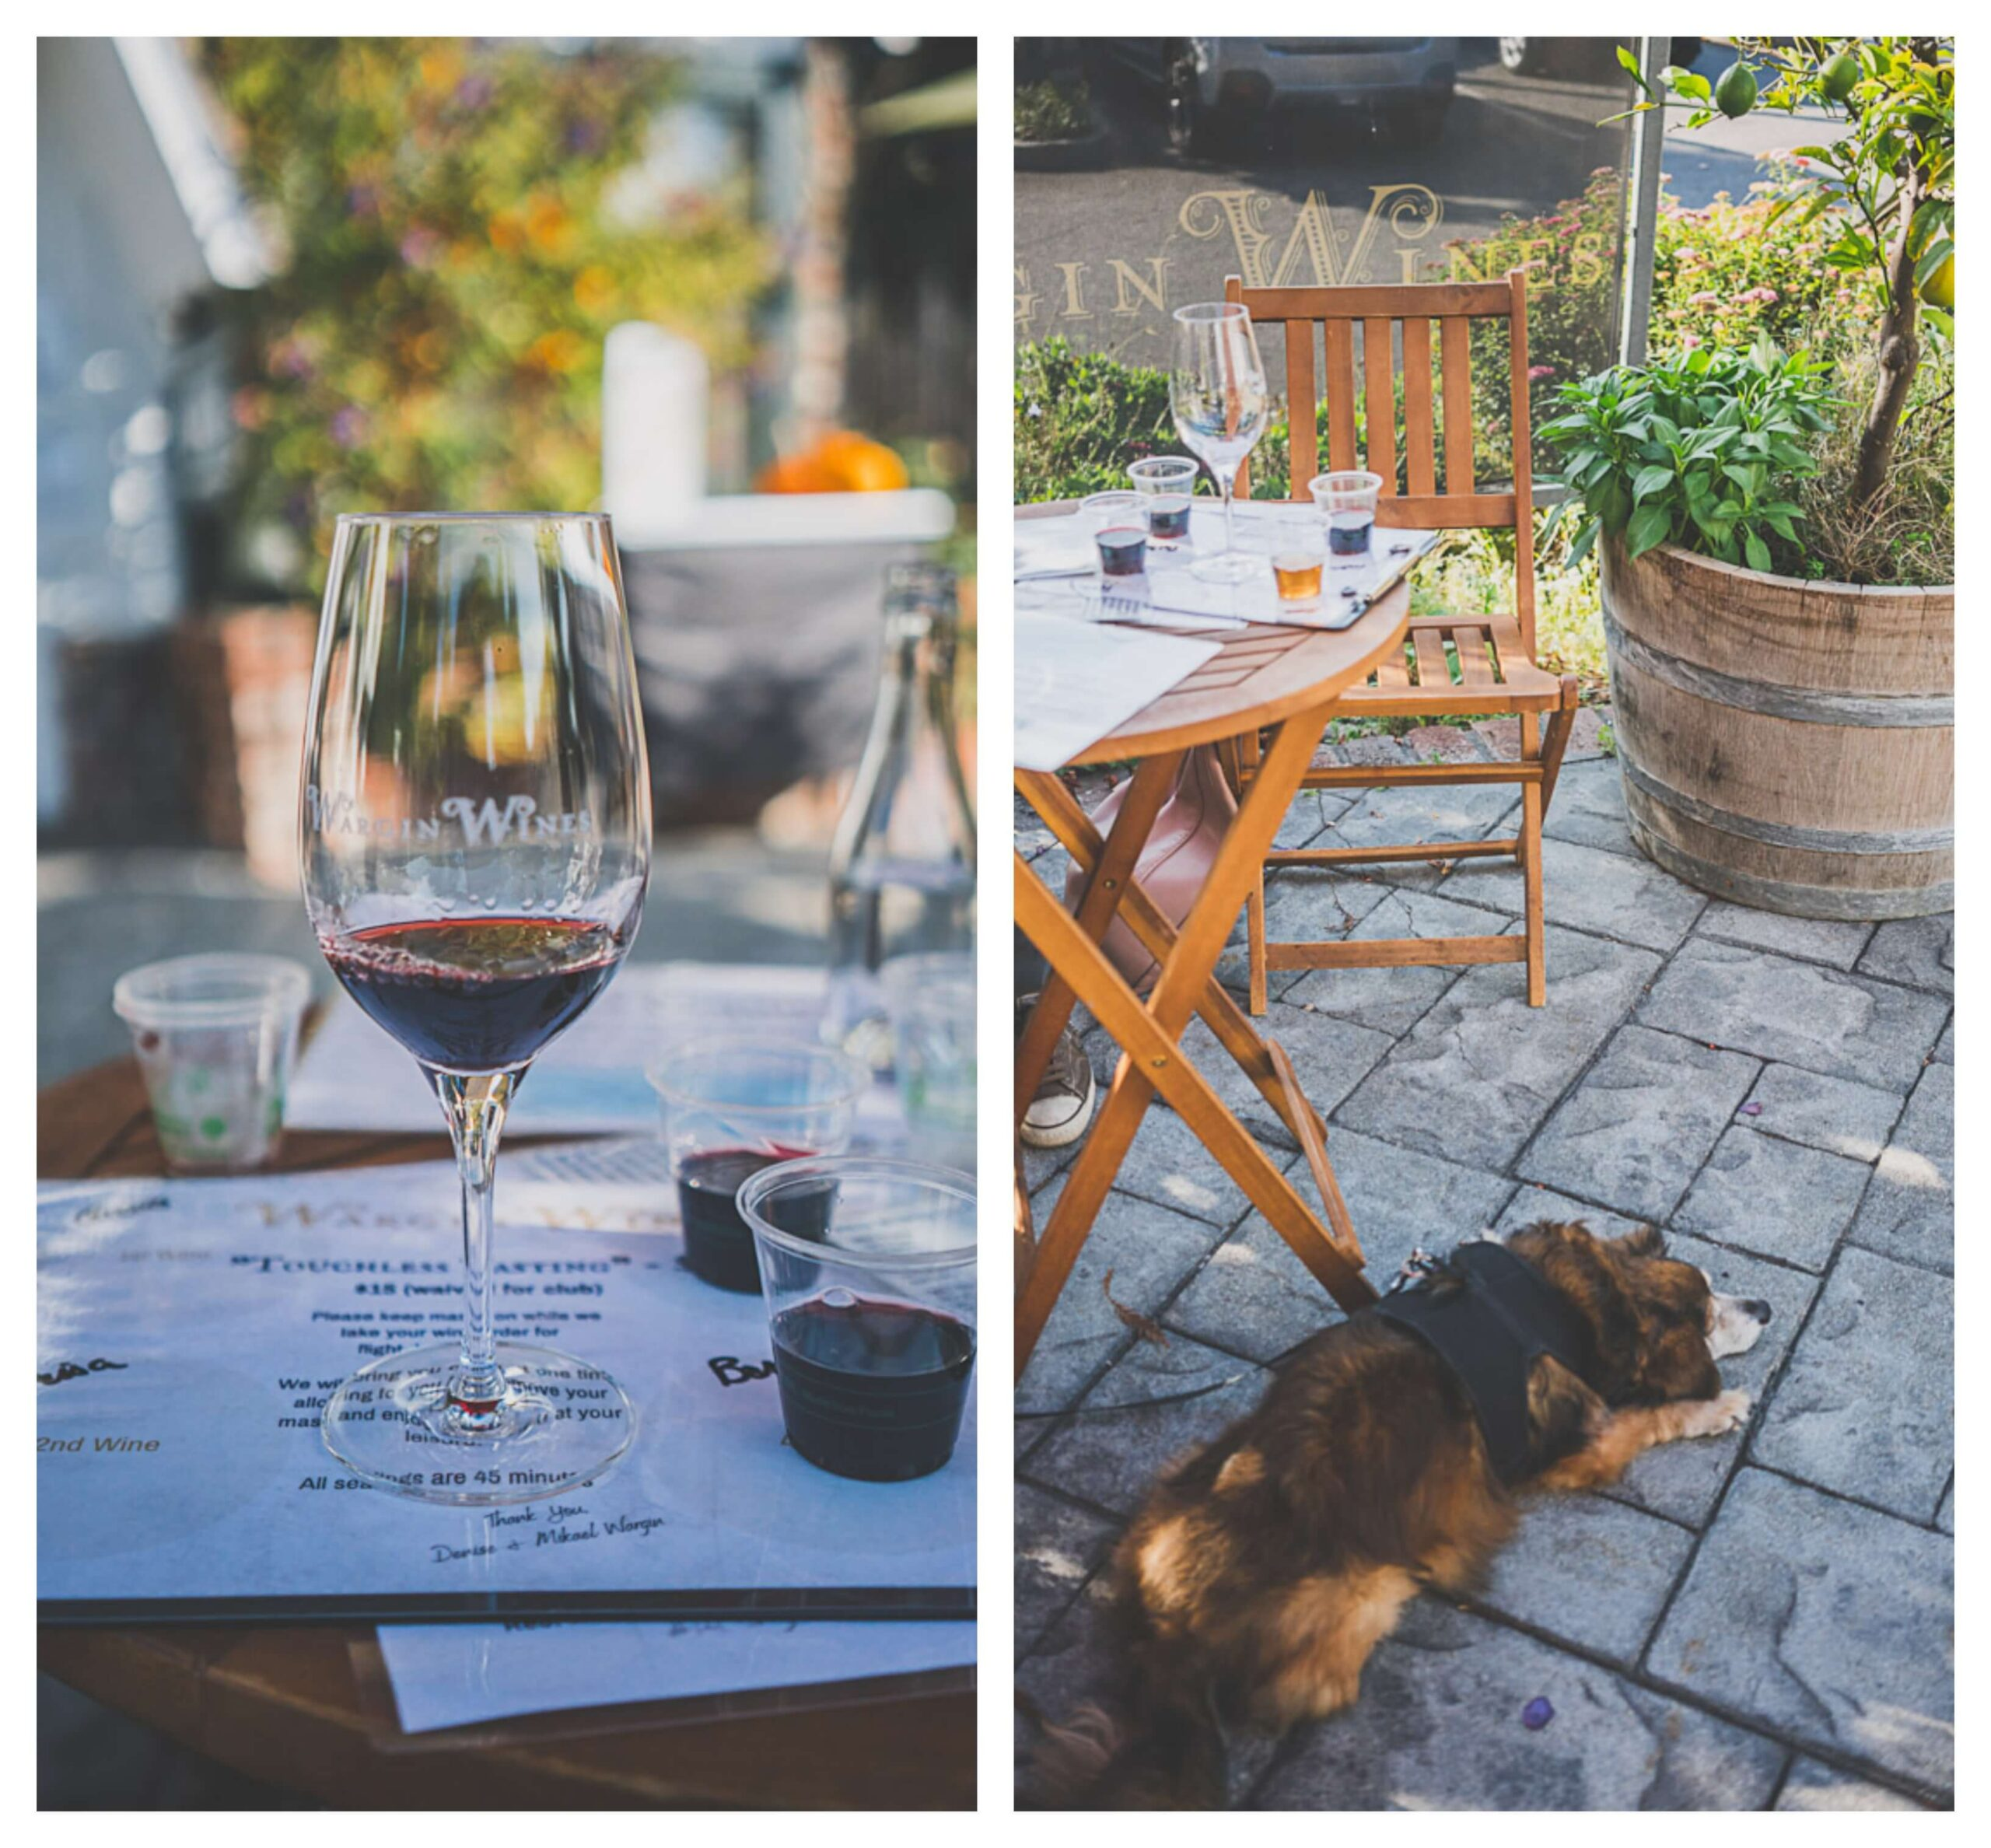 dog friendly wine tasting in Santa Cruz at Wargin winery